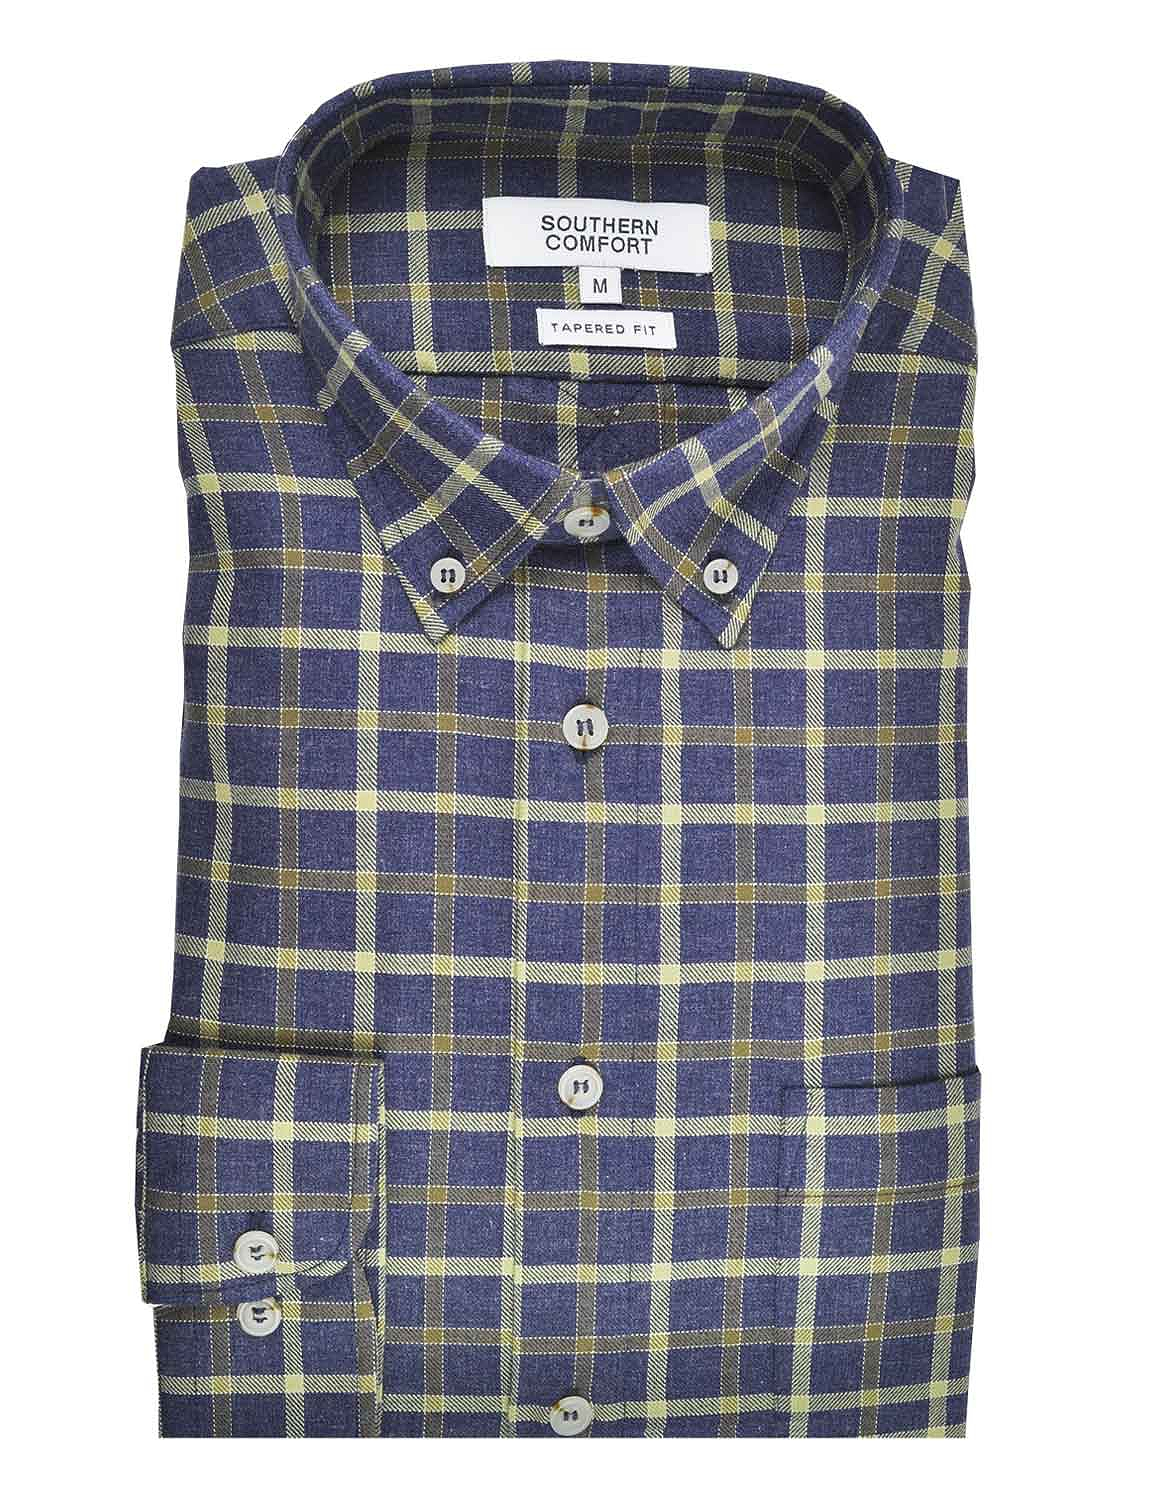 Southern Comfort Long Sleeve Twill Large Plaid Shirt - Olive